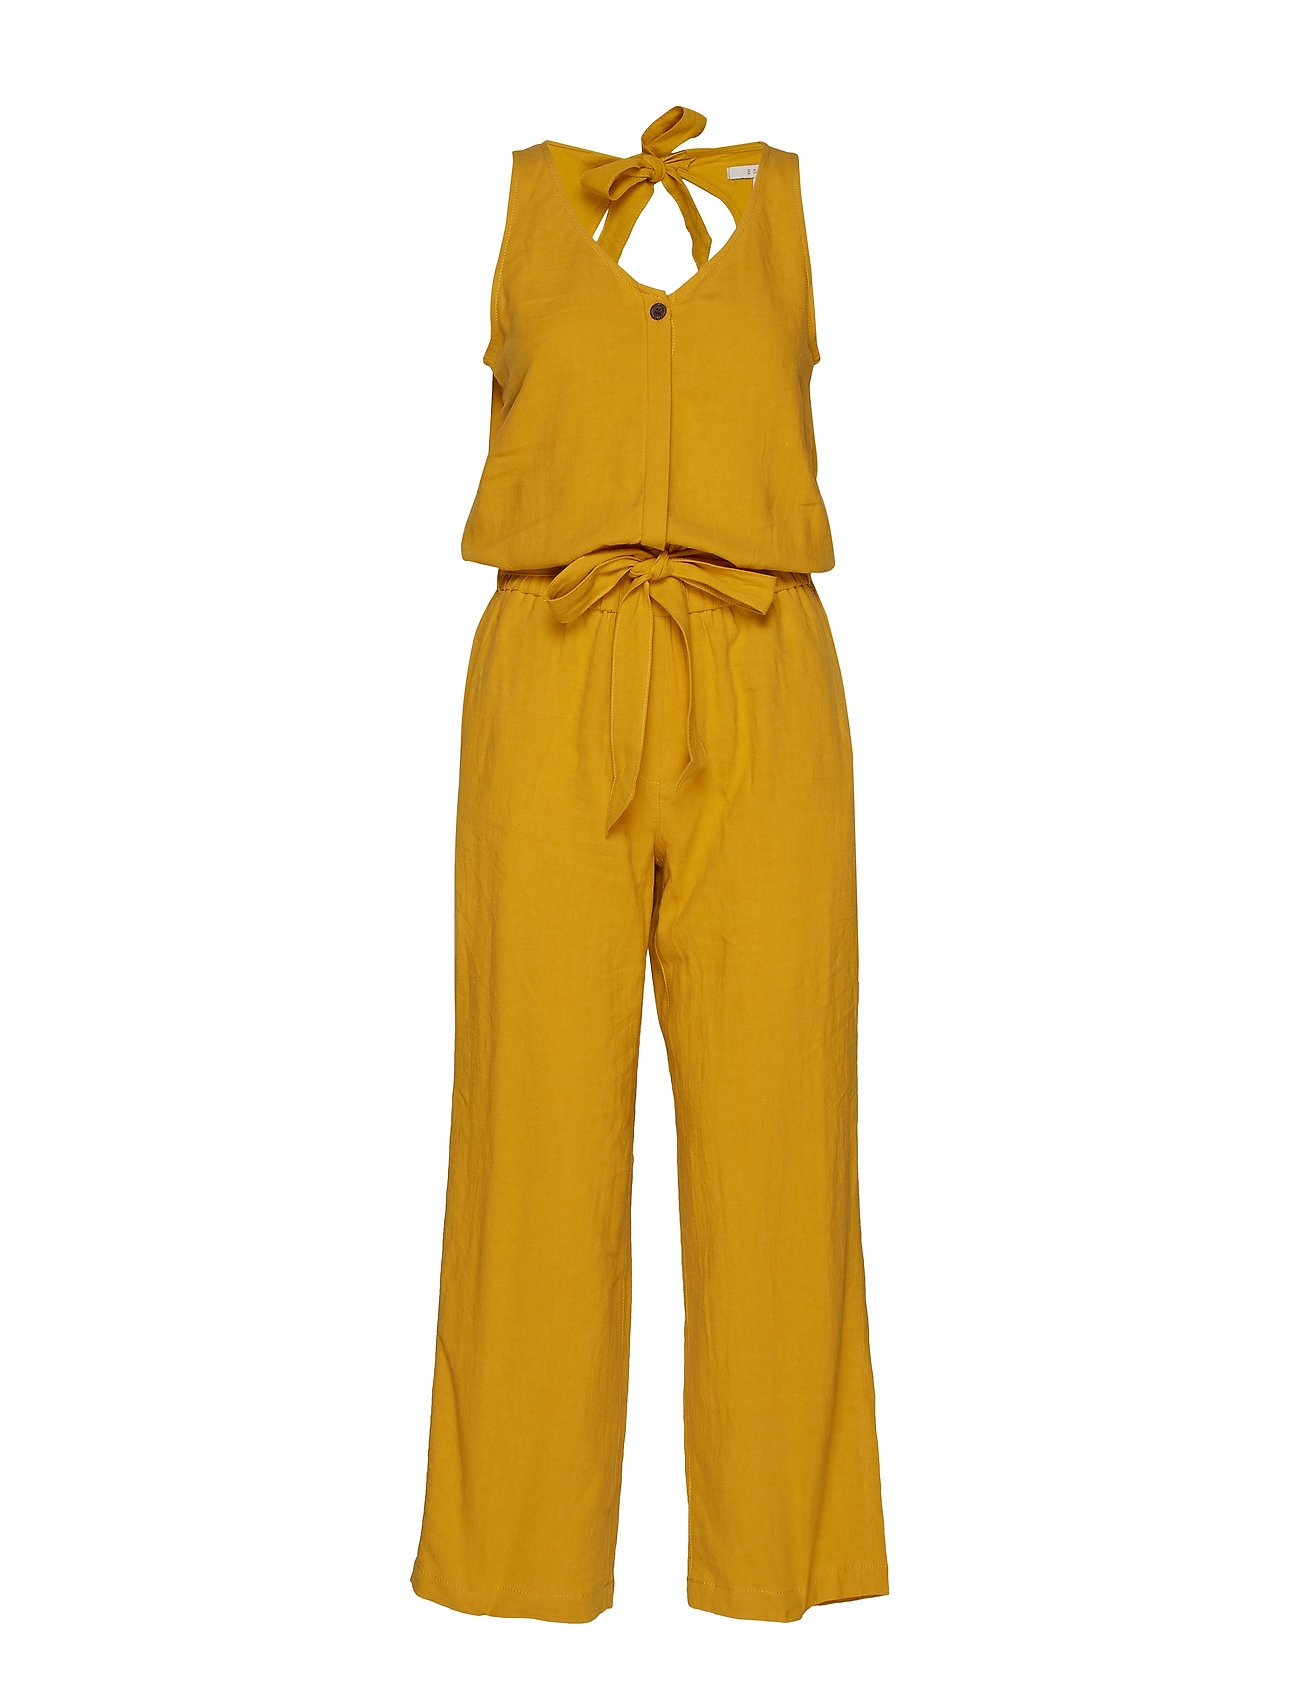 Esprit Casual Overalls woven - BRASS YELLOW